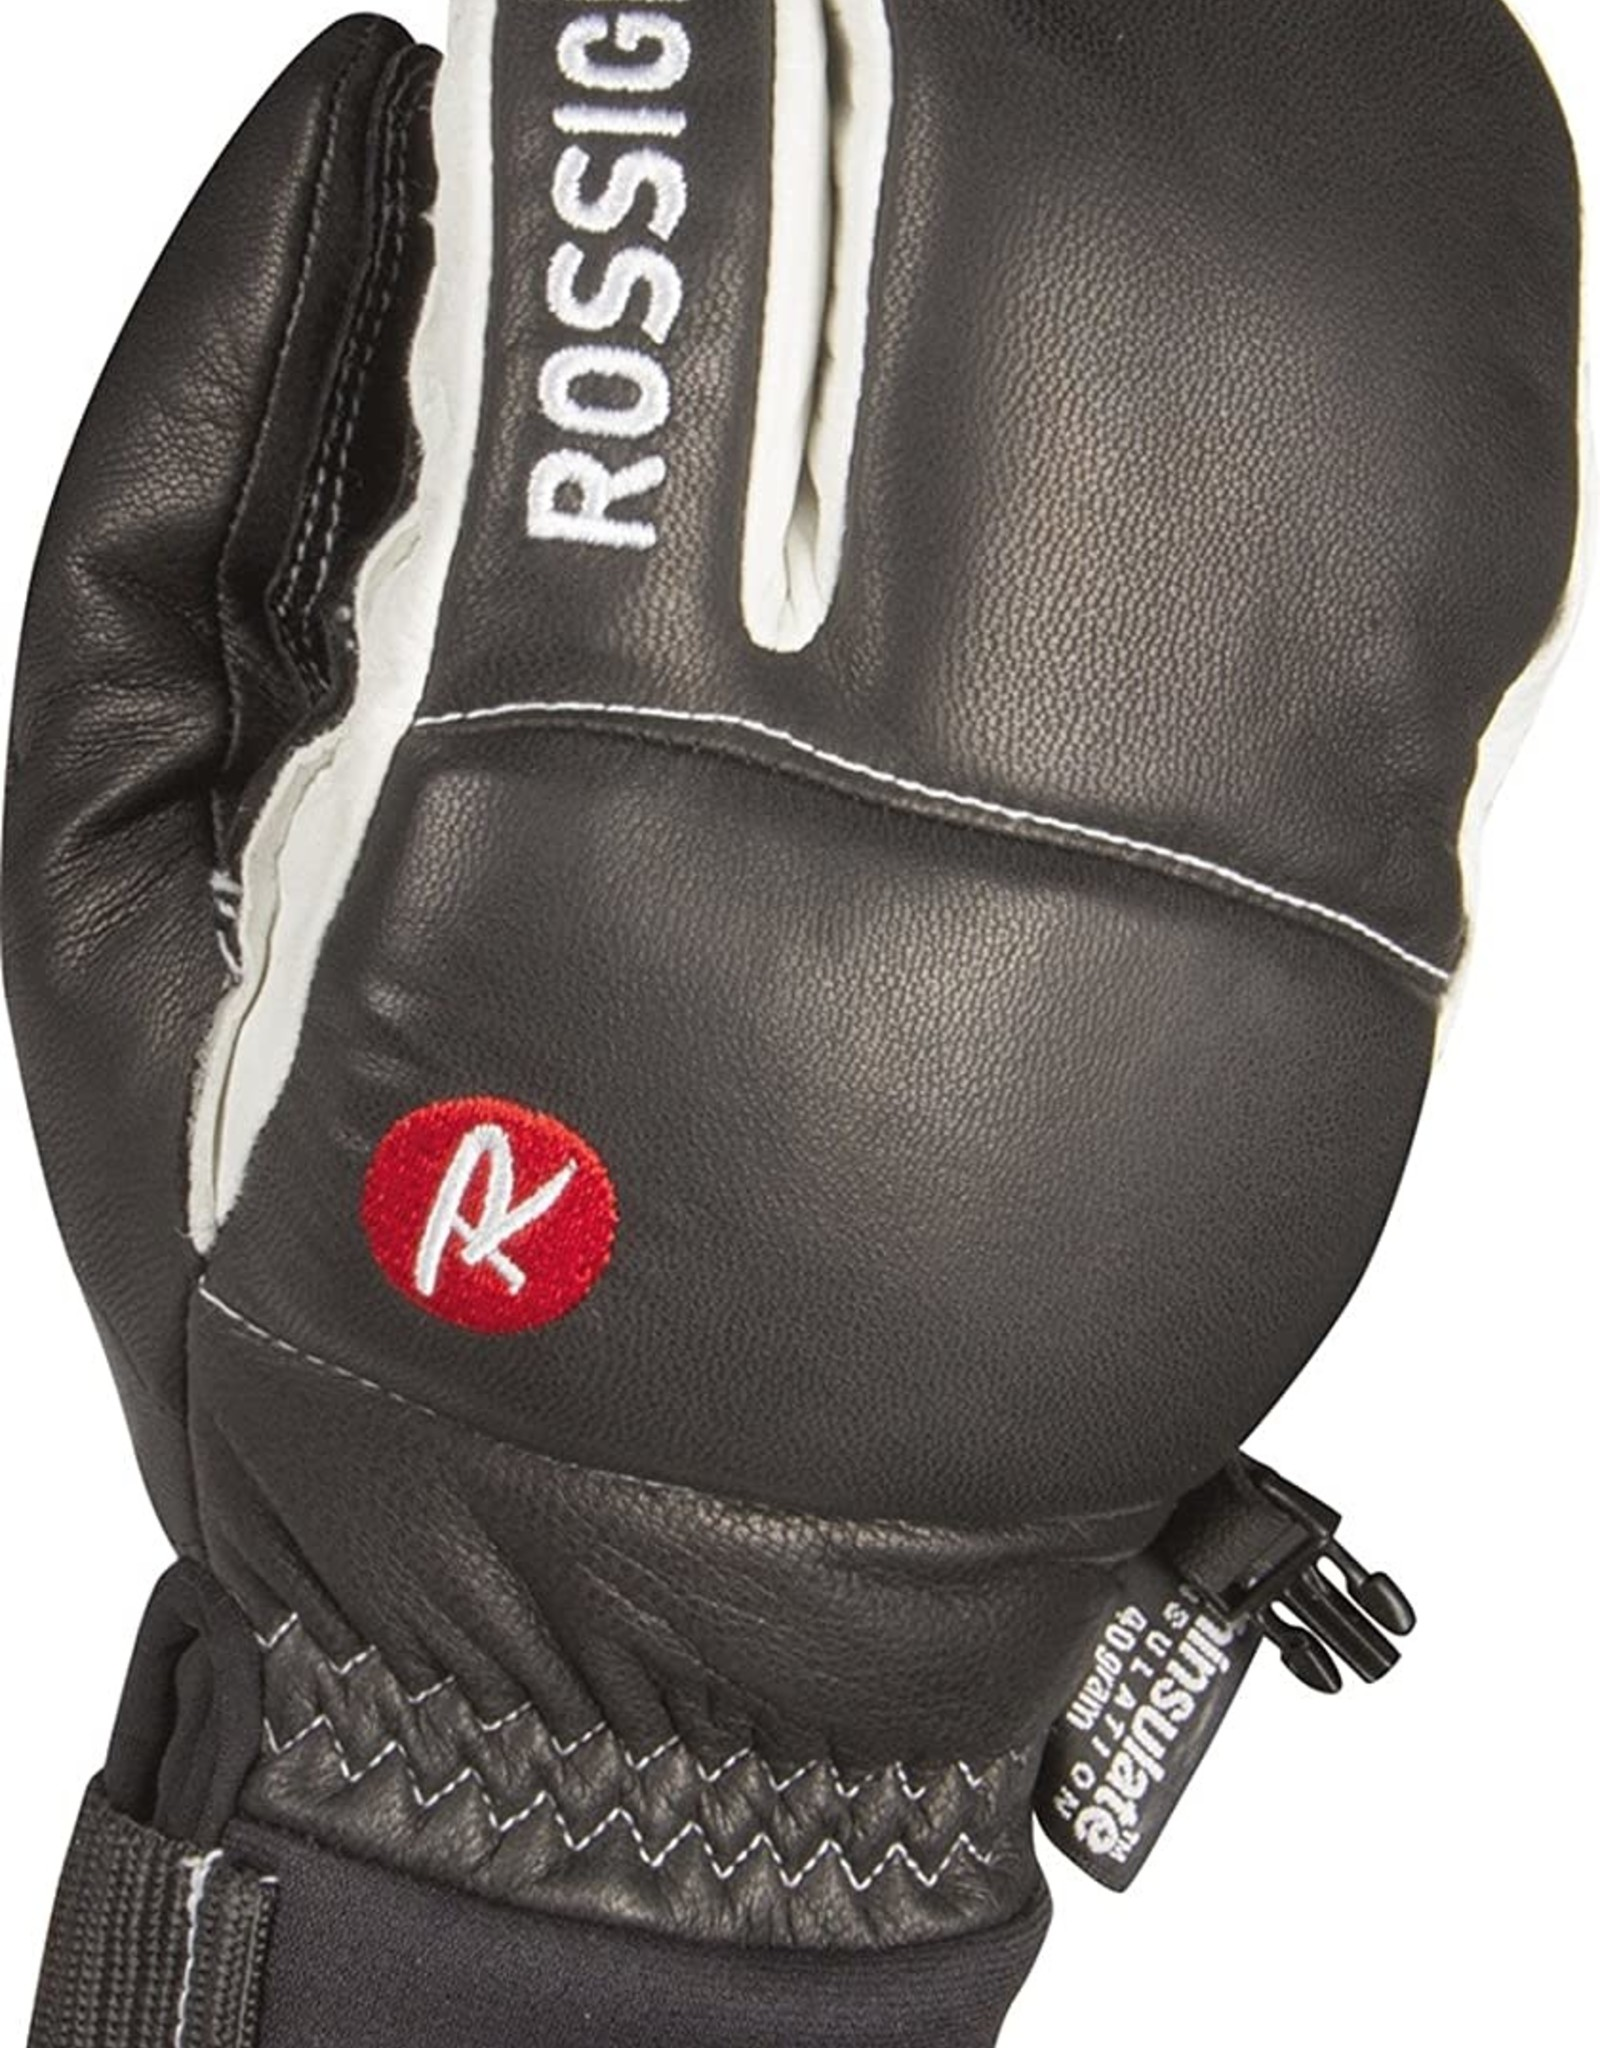 Rossignol Rossignol - POINTER 3 Finger Mitts -